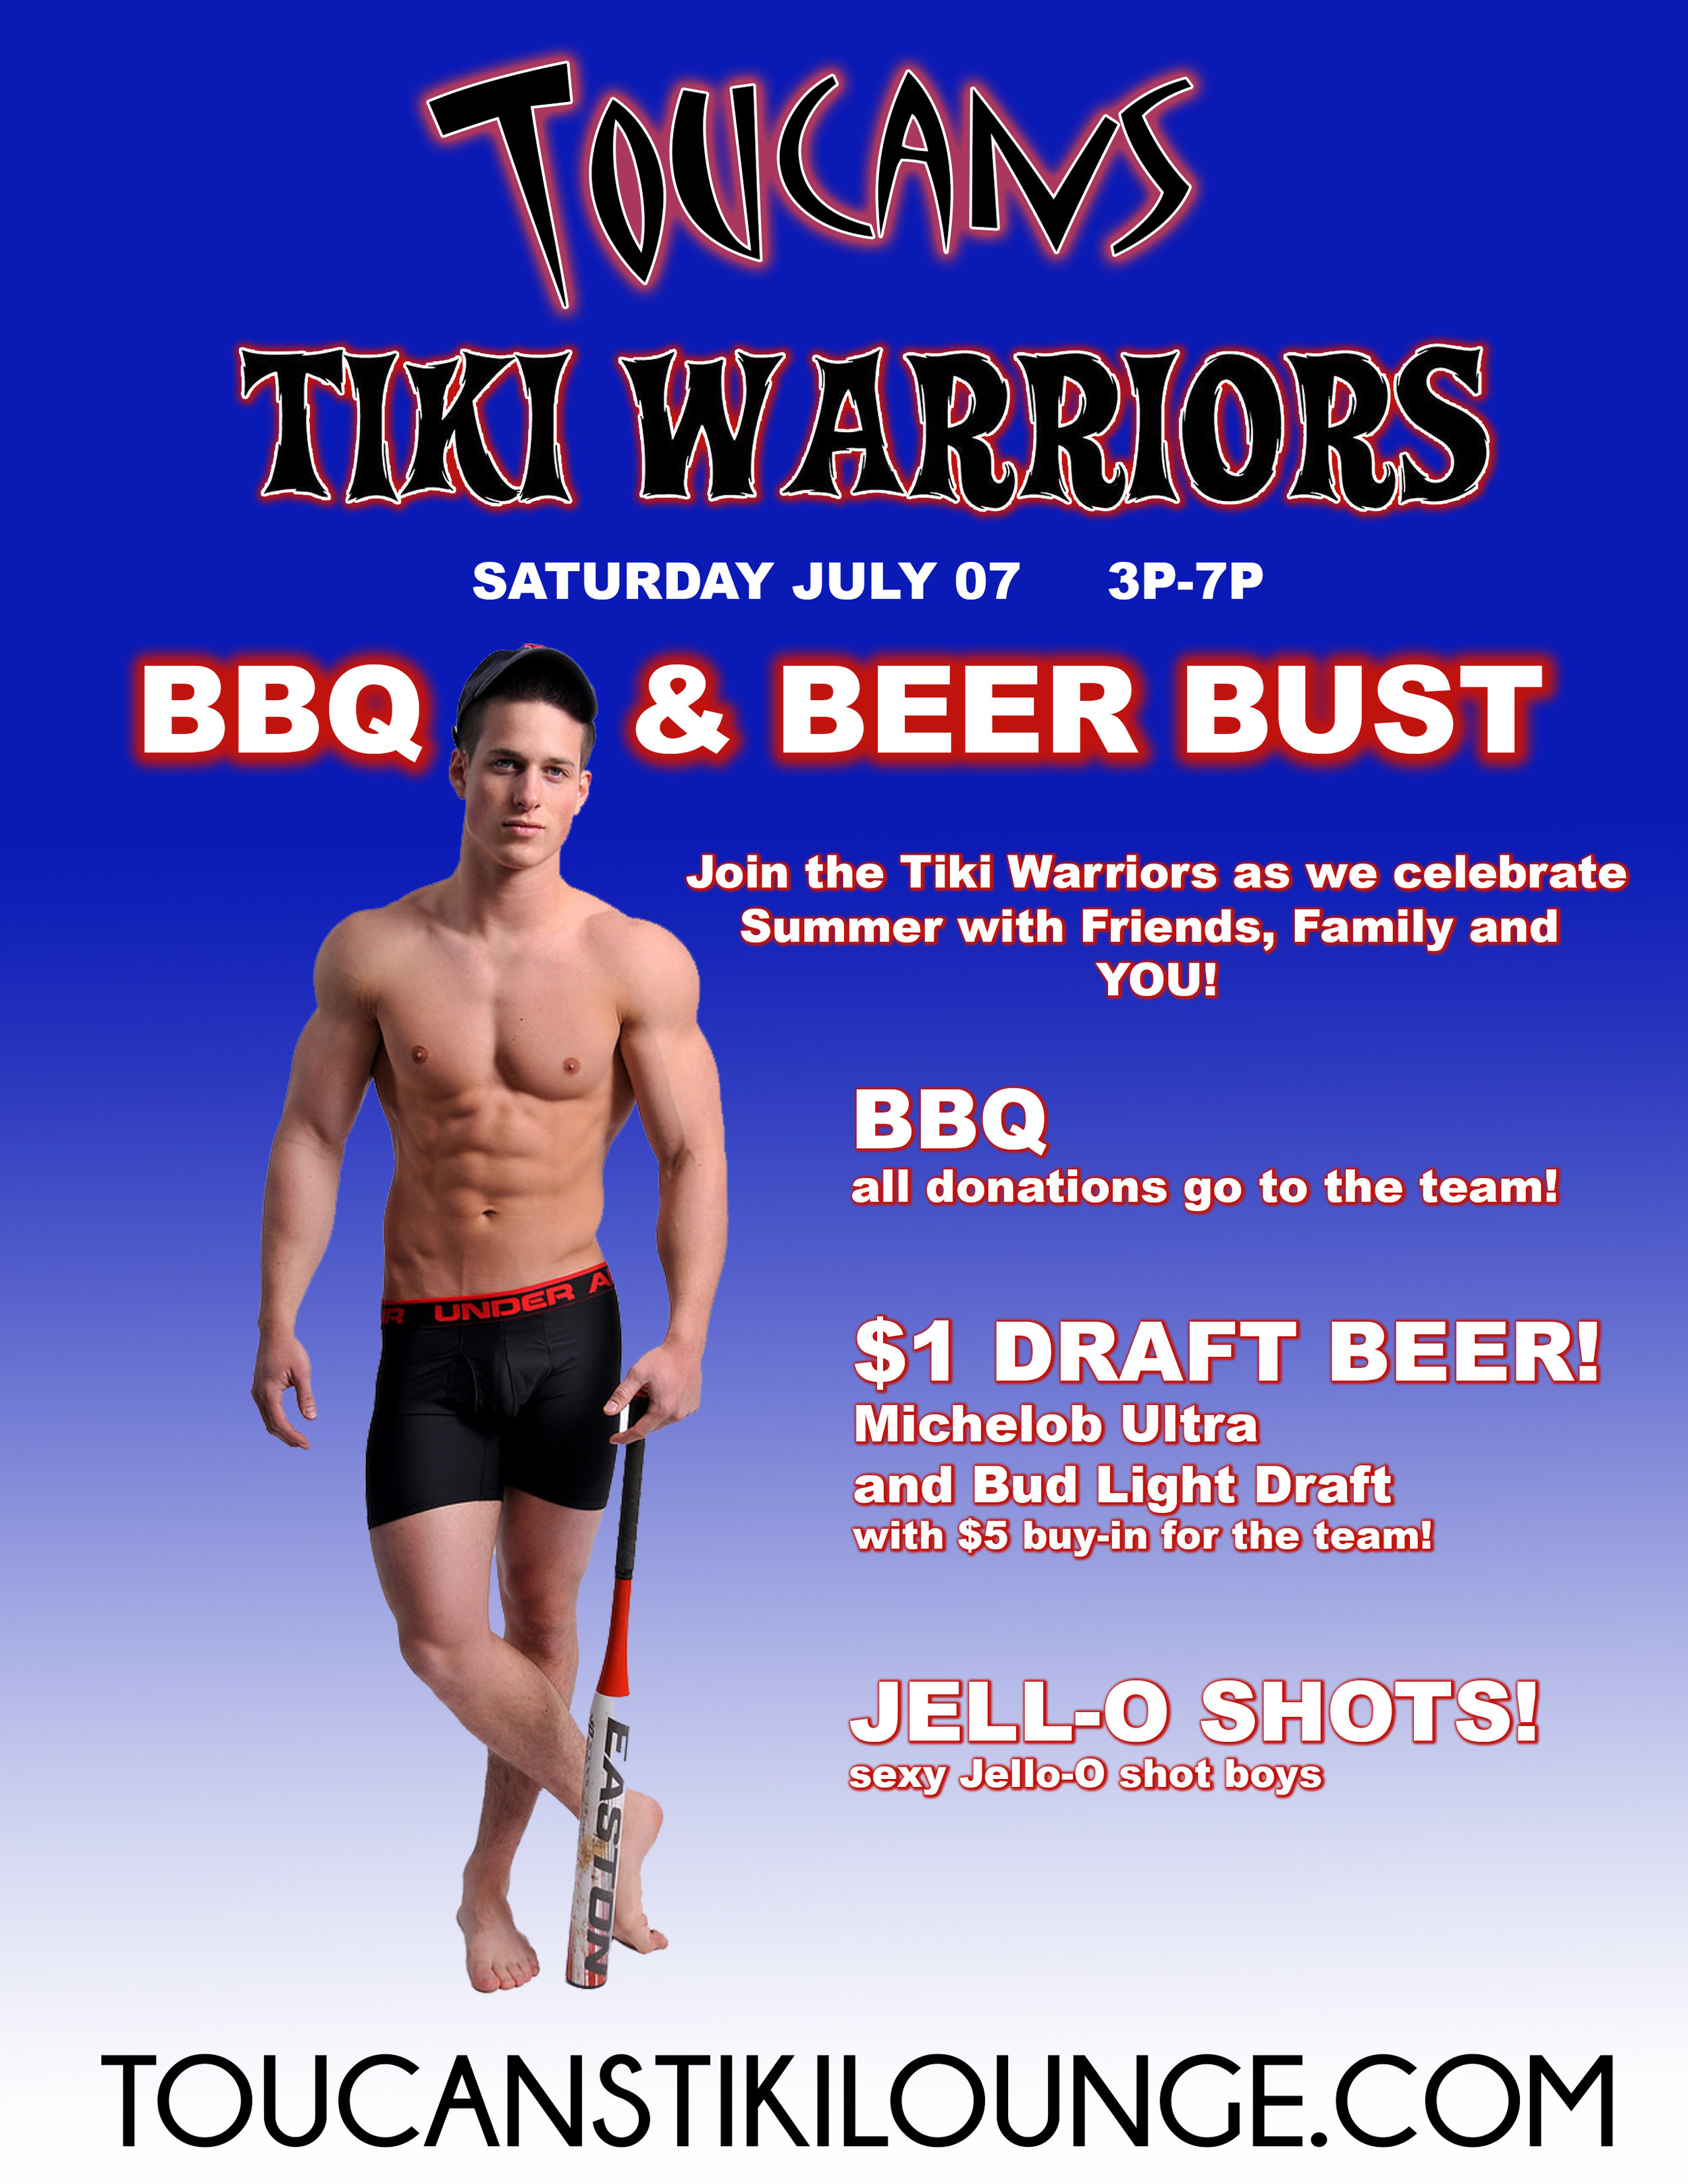 Toucans Tiki Warriors Beer Bust Fundraiser !!!   CHEAP BEER! JELL-O SHOTS! SEXY SOFTBALLERS!  $1 Michelobs and Bud Light Drafts with a $5 Buy-In for the  Toucans Tiki Warriors !  Come join the Tiki Warriors as we hang out with Friends, Family and YOU!!!